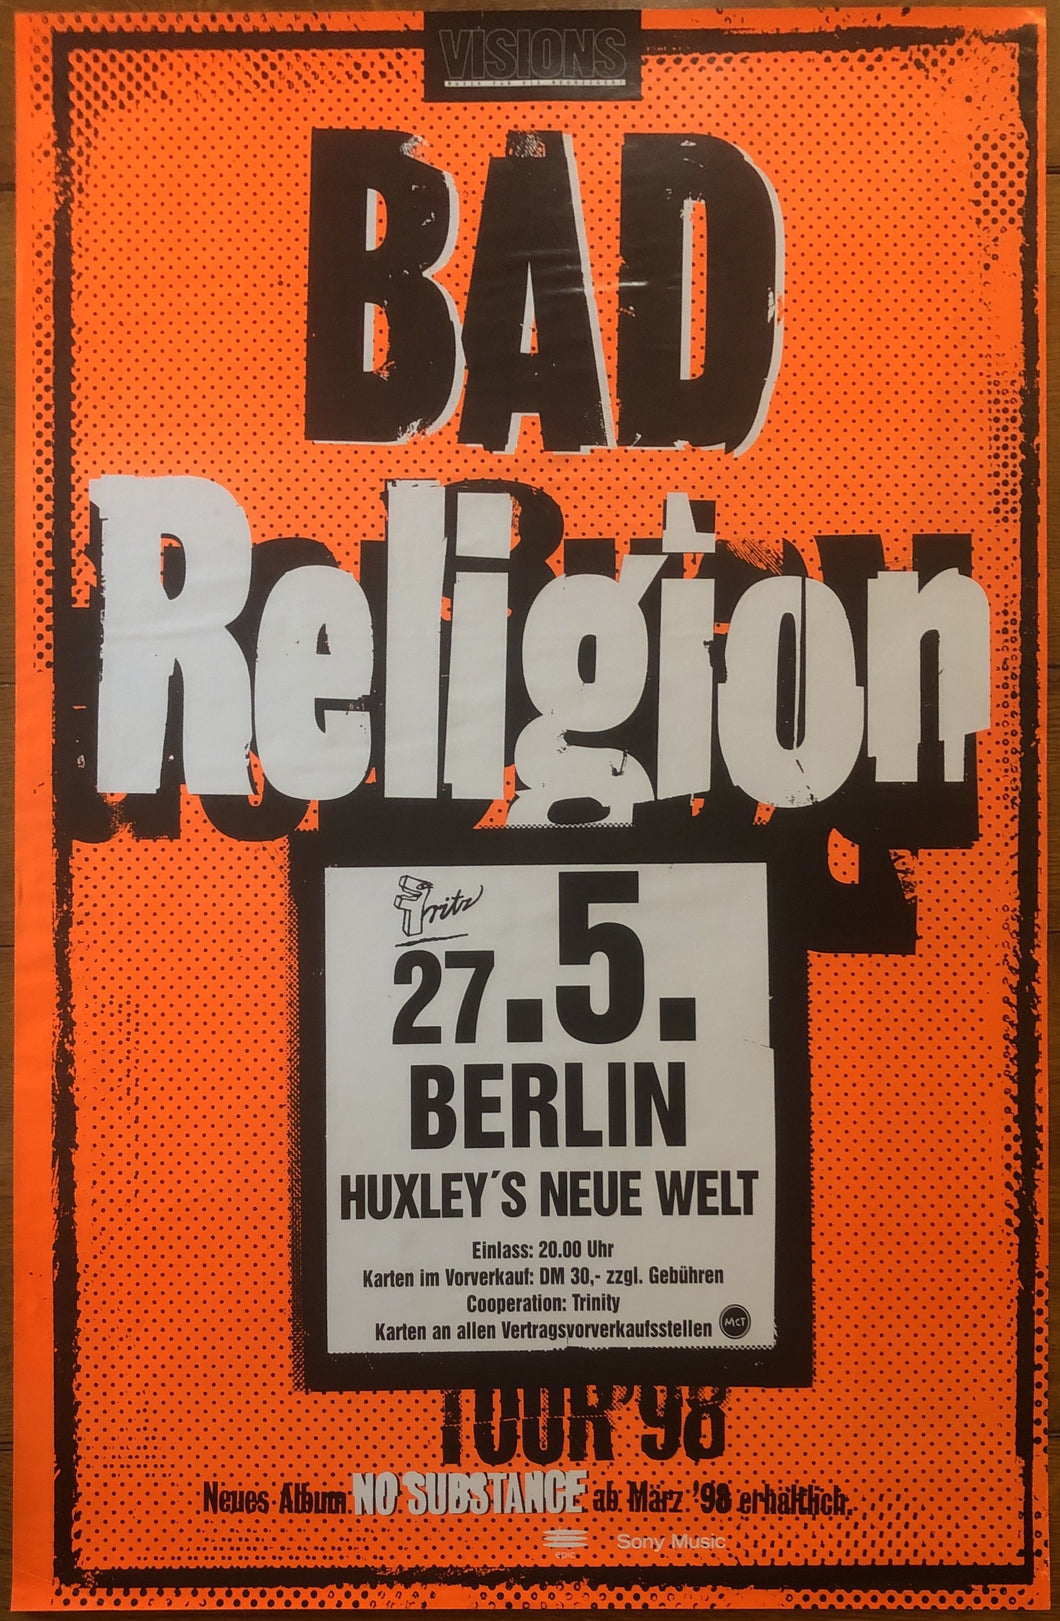 Bad Religion Original Promo Concert Gig Poster Huxley's Neue Welt Berlin 27th May 1998